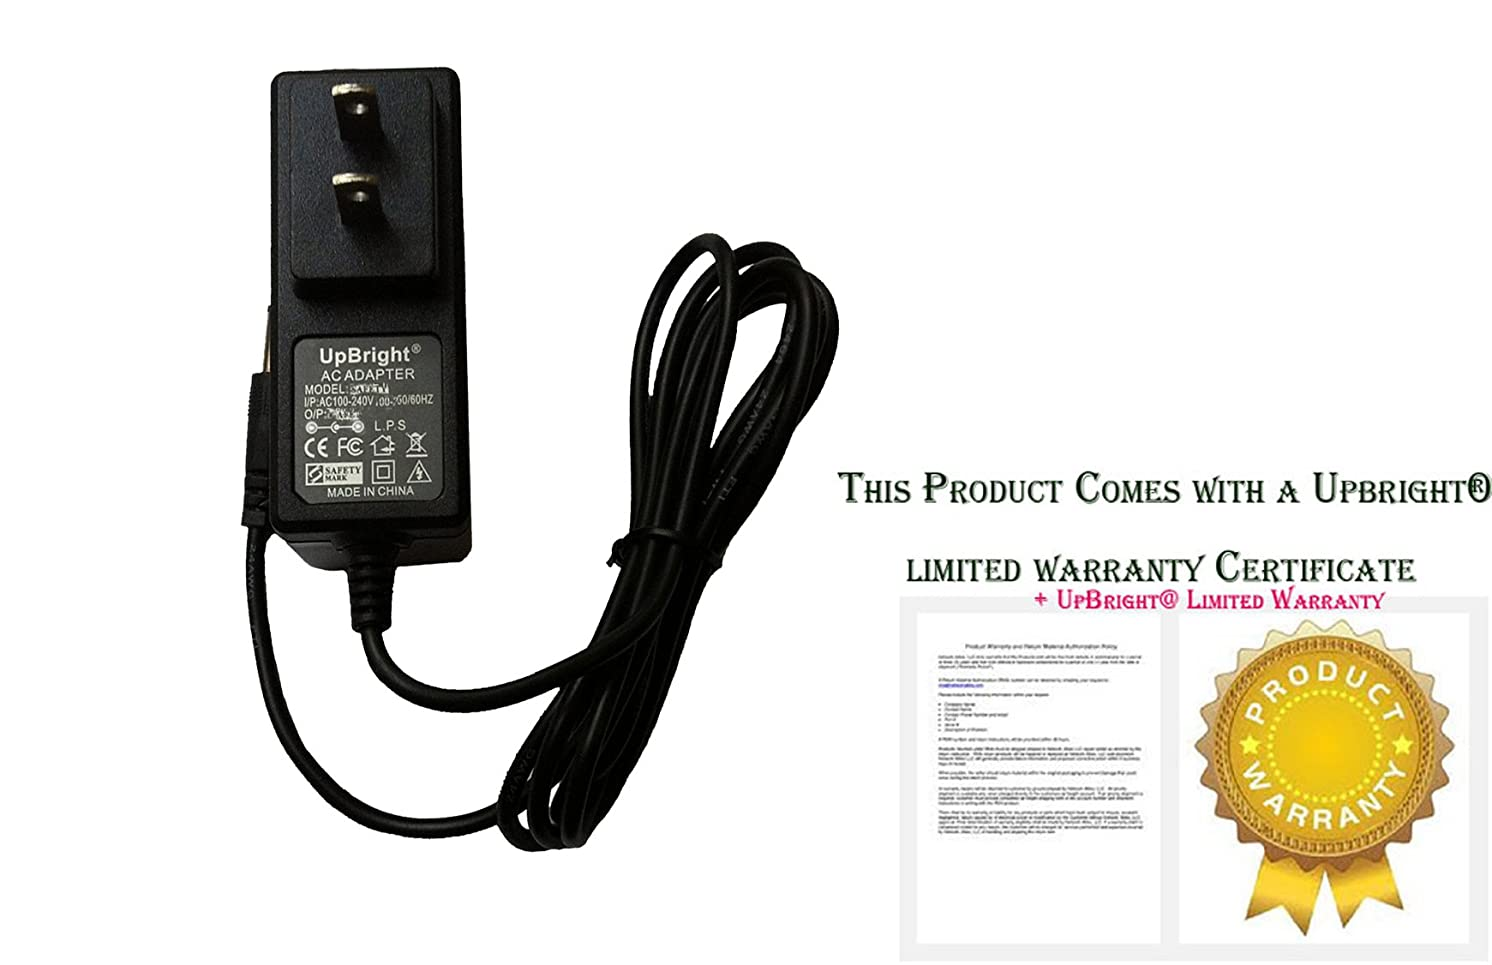 UpBright NEW Global AC / DC Adapter For Swann NVA-460 SWNVA-460AH2 SWNVA-460AH2-US Wi-Fi Video & Alarm Security Kit - Micro Monitoring System Power Supply Cord Cable PS Wall Home Charger Mains PSU